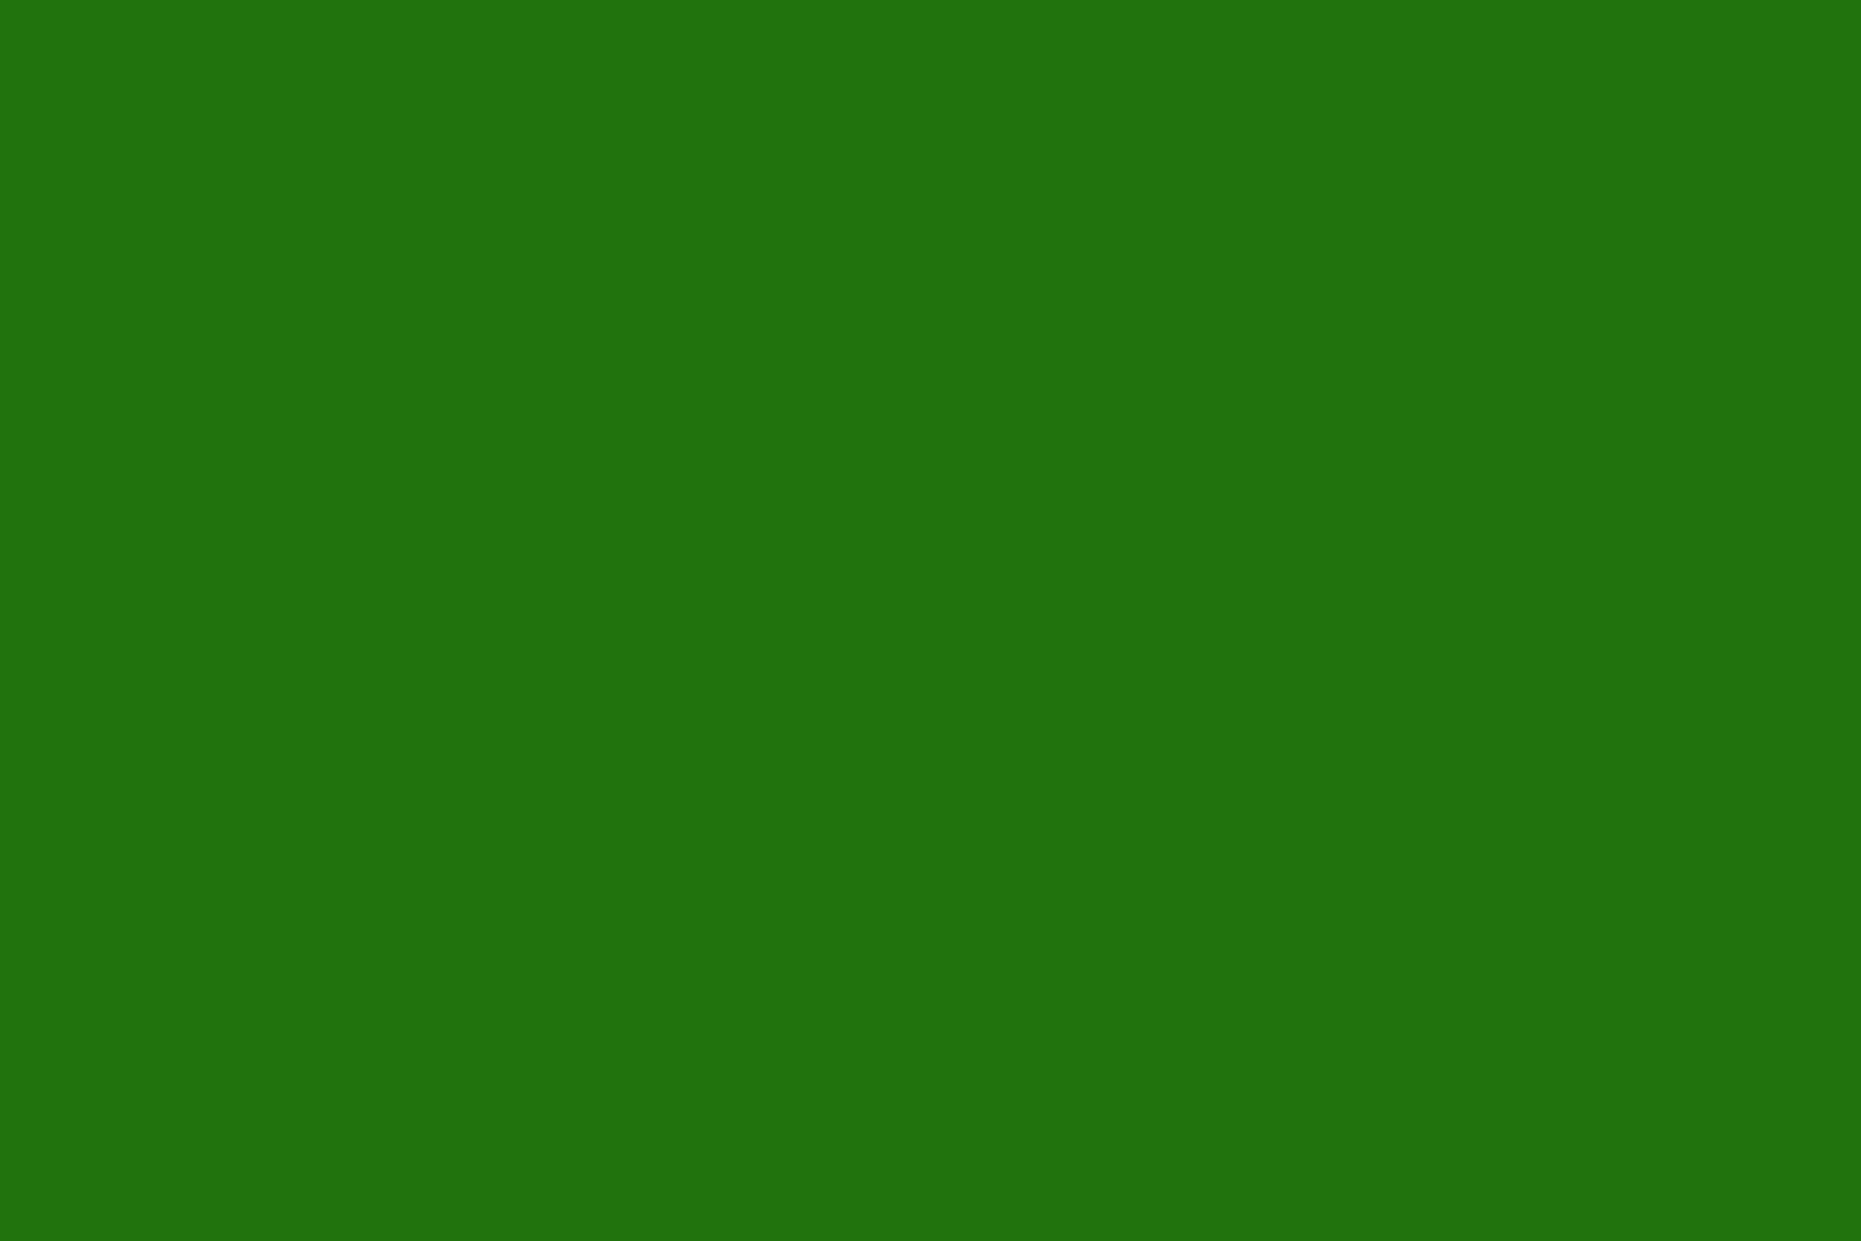 Background verde John Deere 20730d .jpg